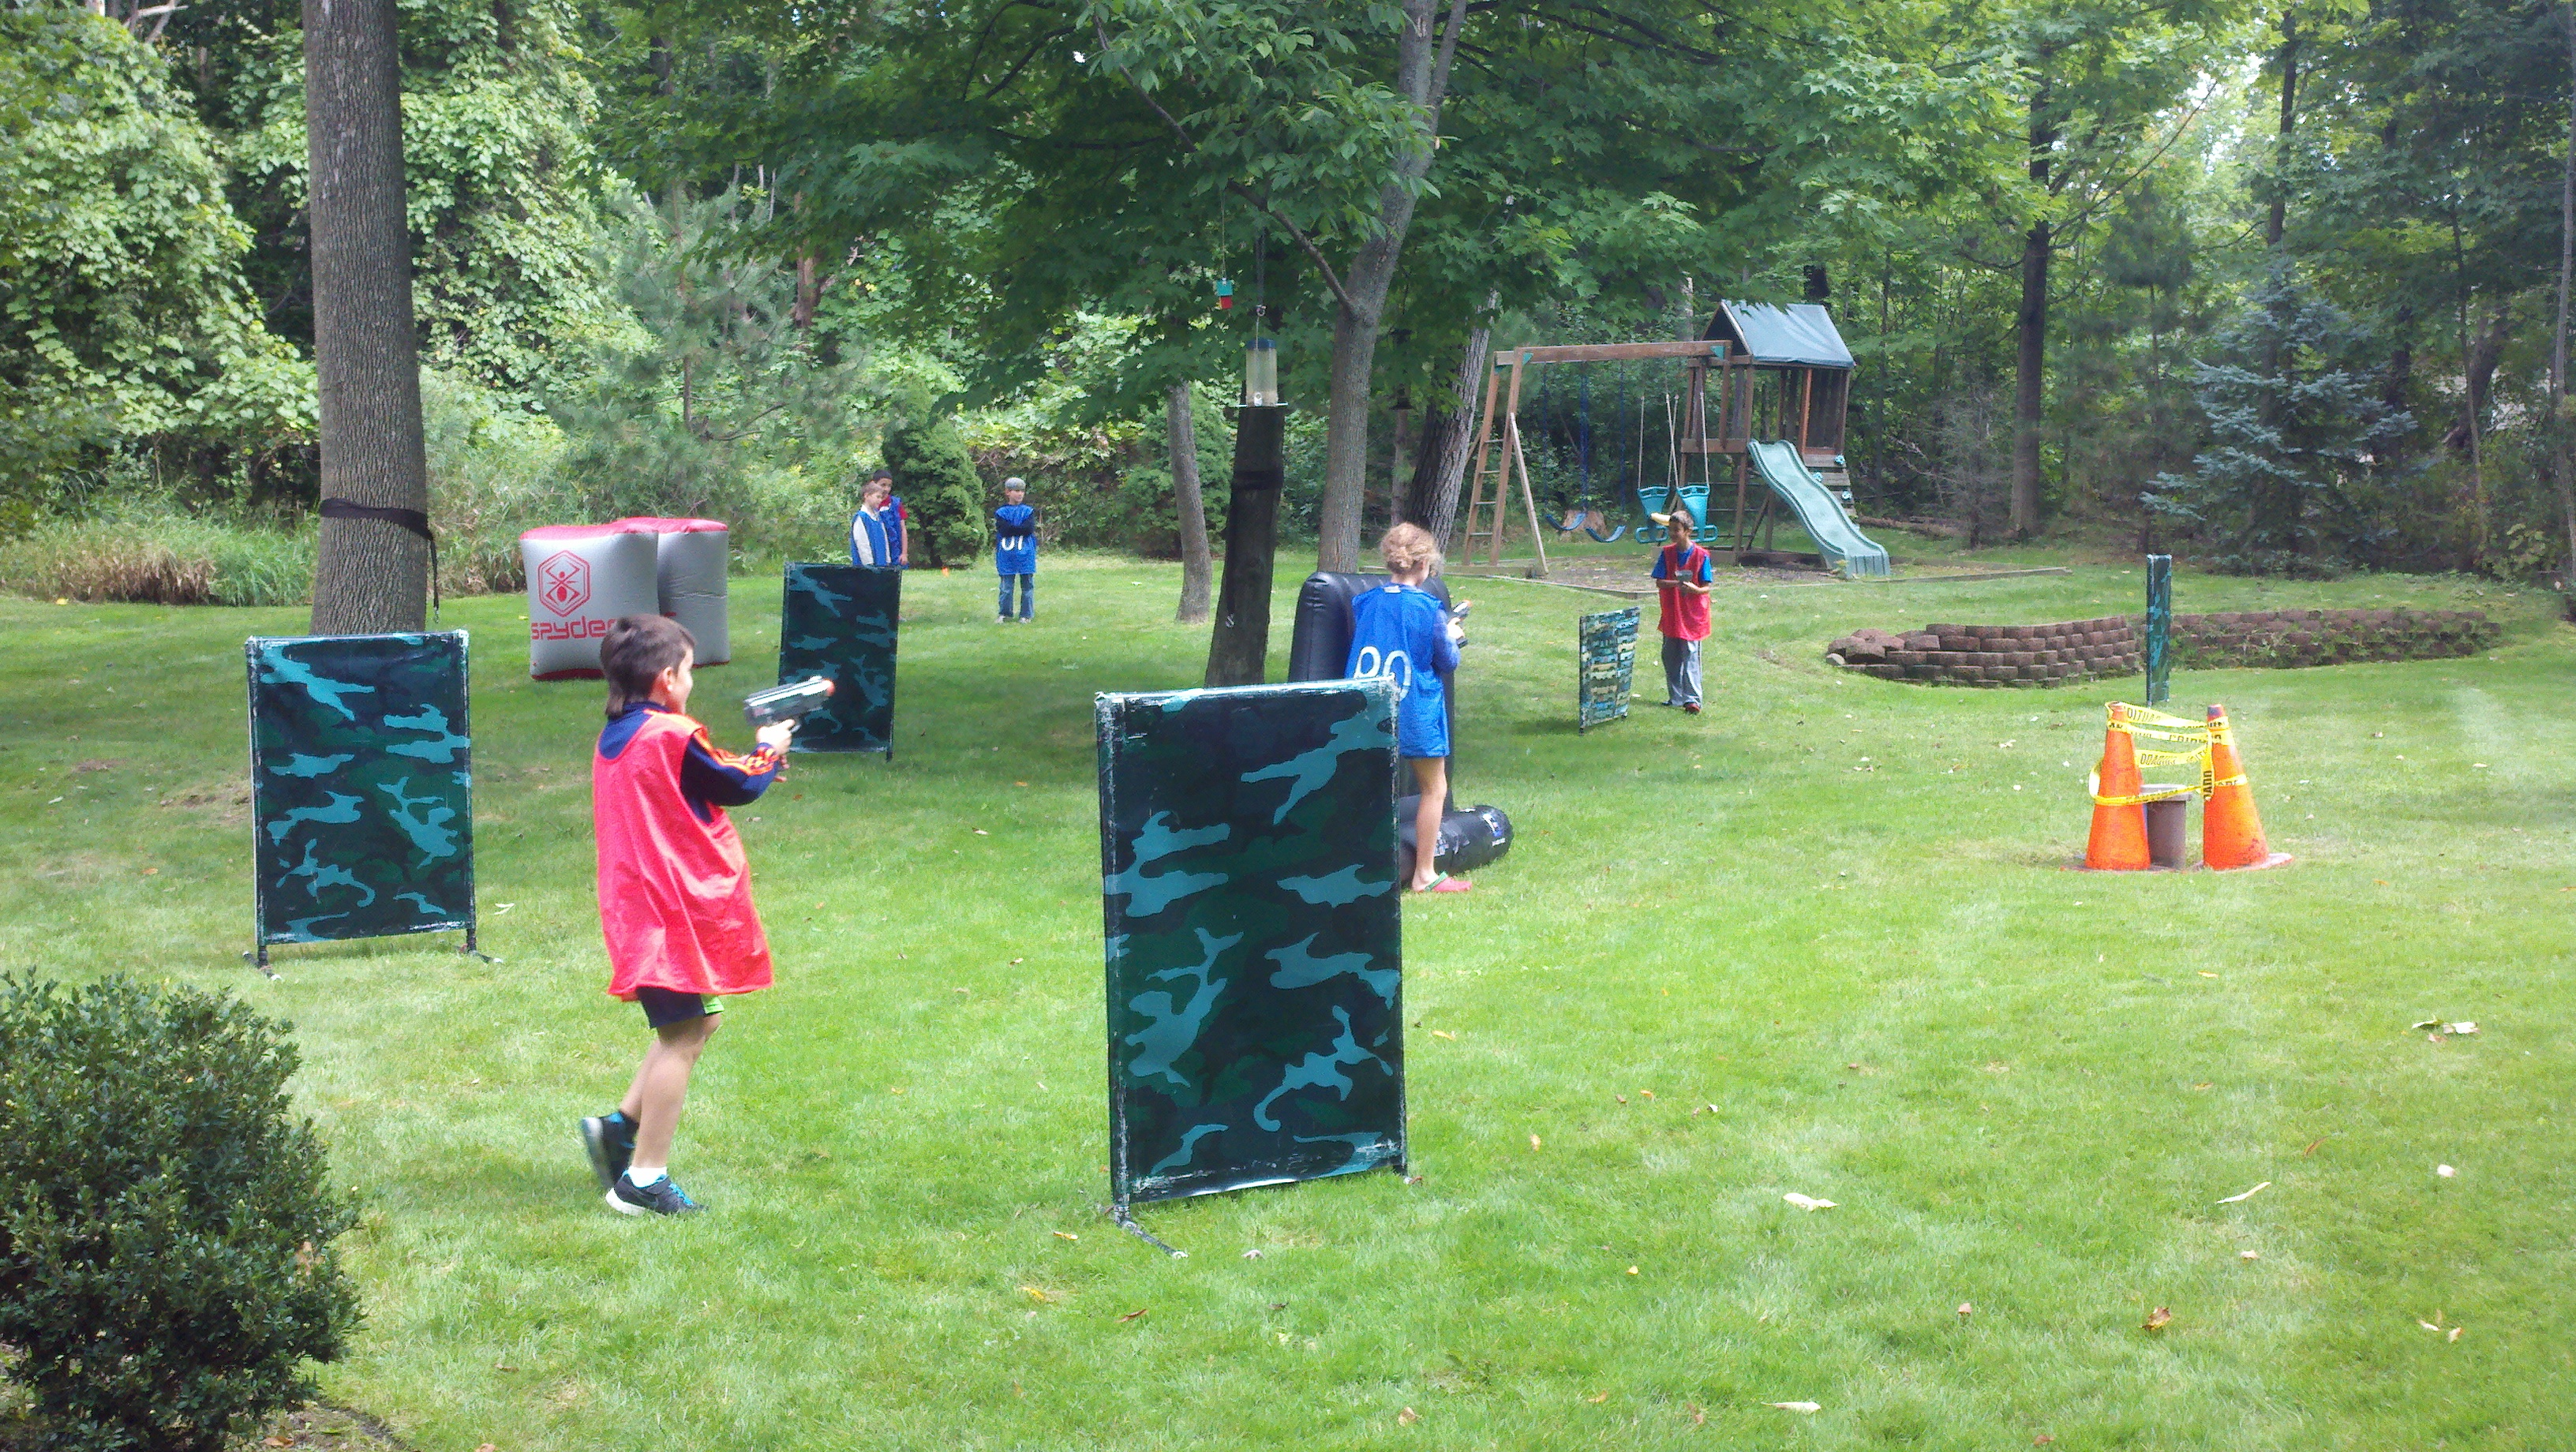 laser tag birthday party at home ; 2014-09-14_14-18-06_726